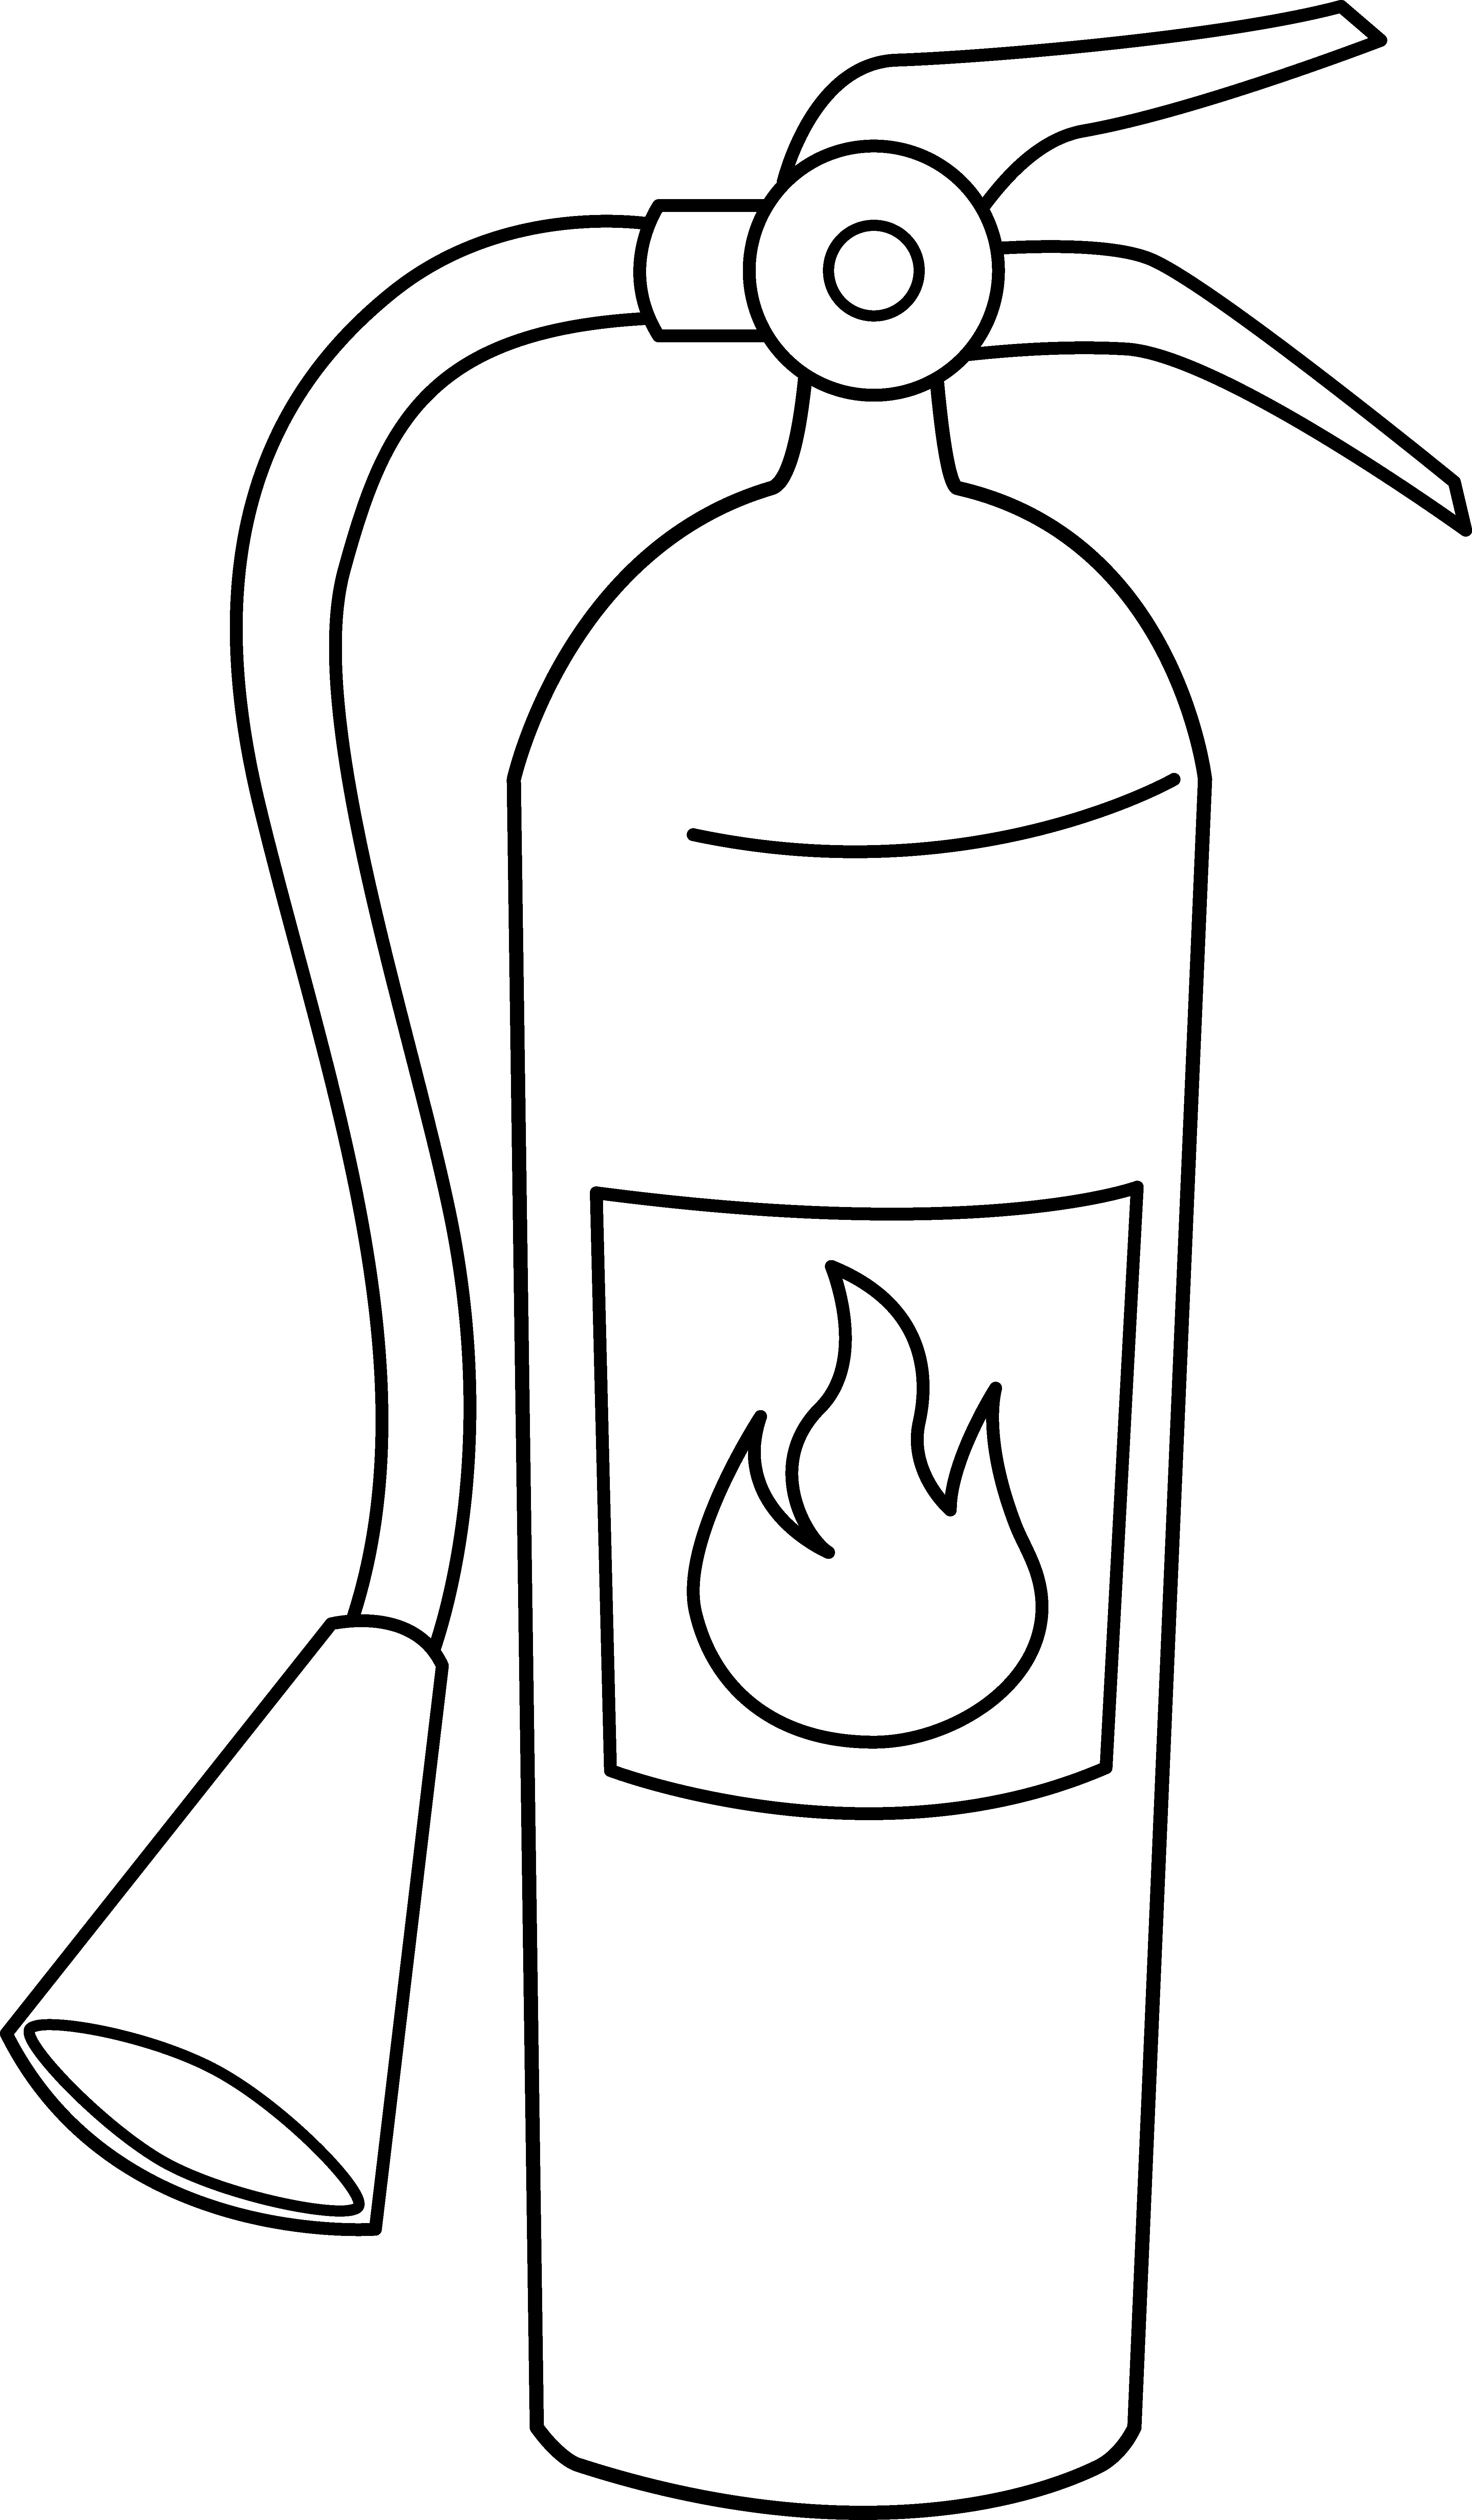 Line Drawing Website : Fire symbol black and white clipart panda free